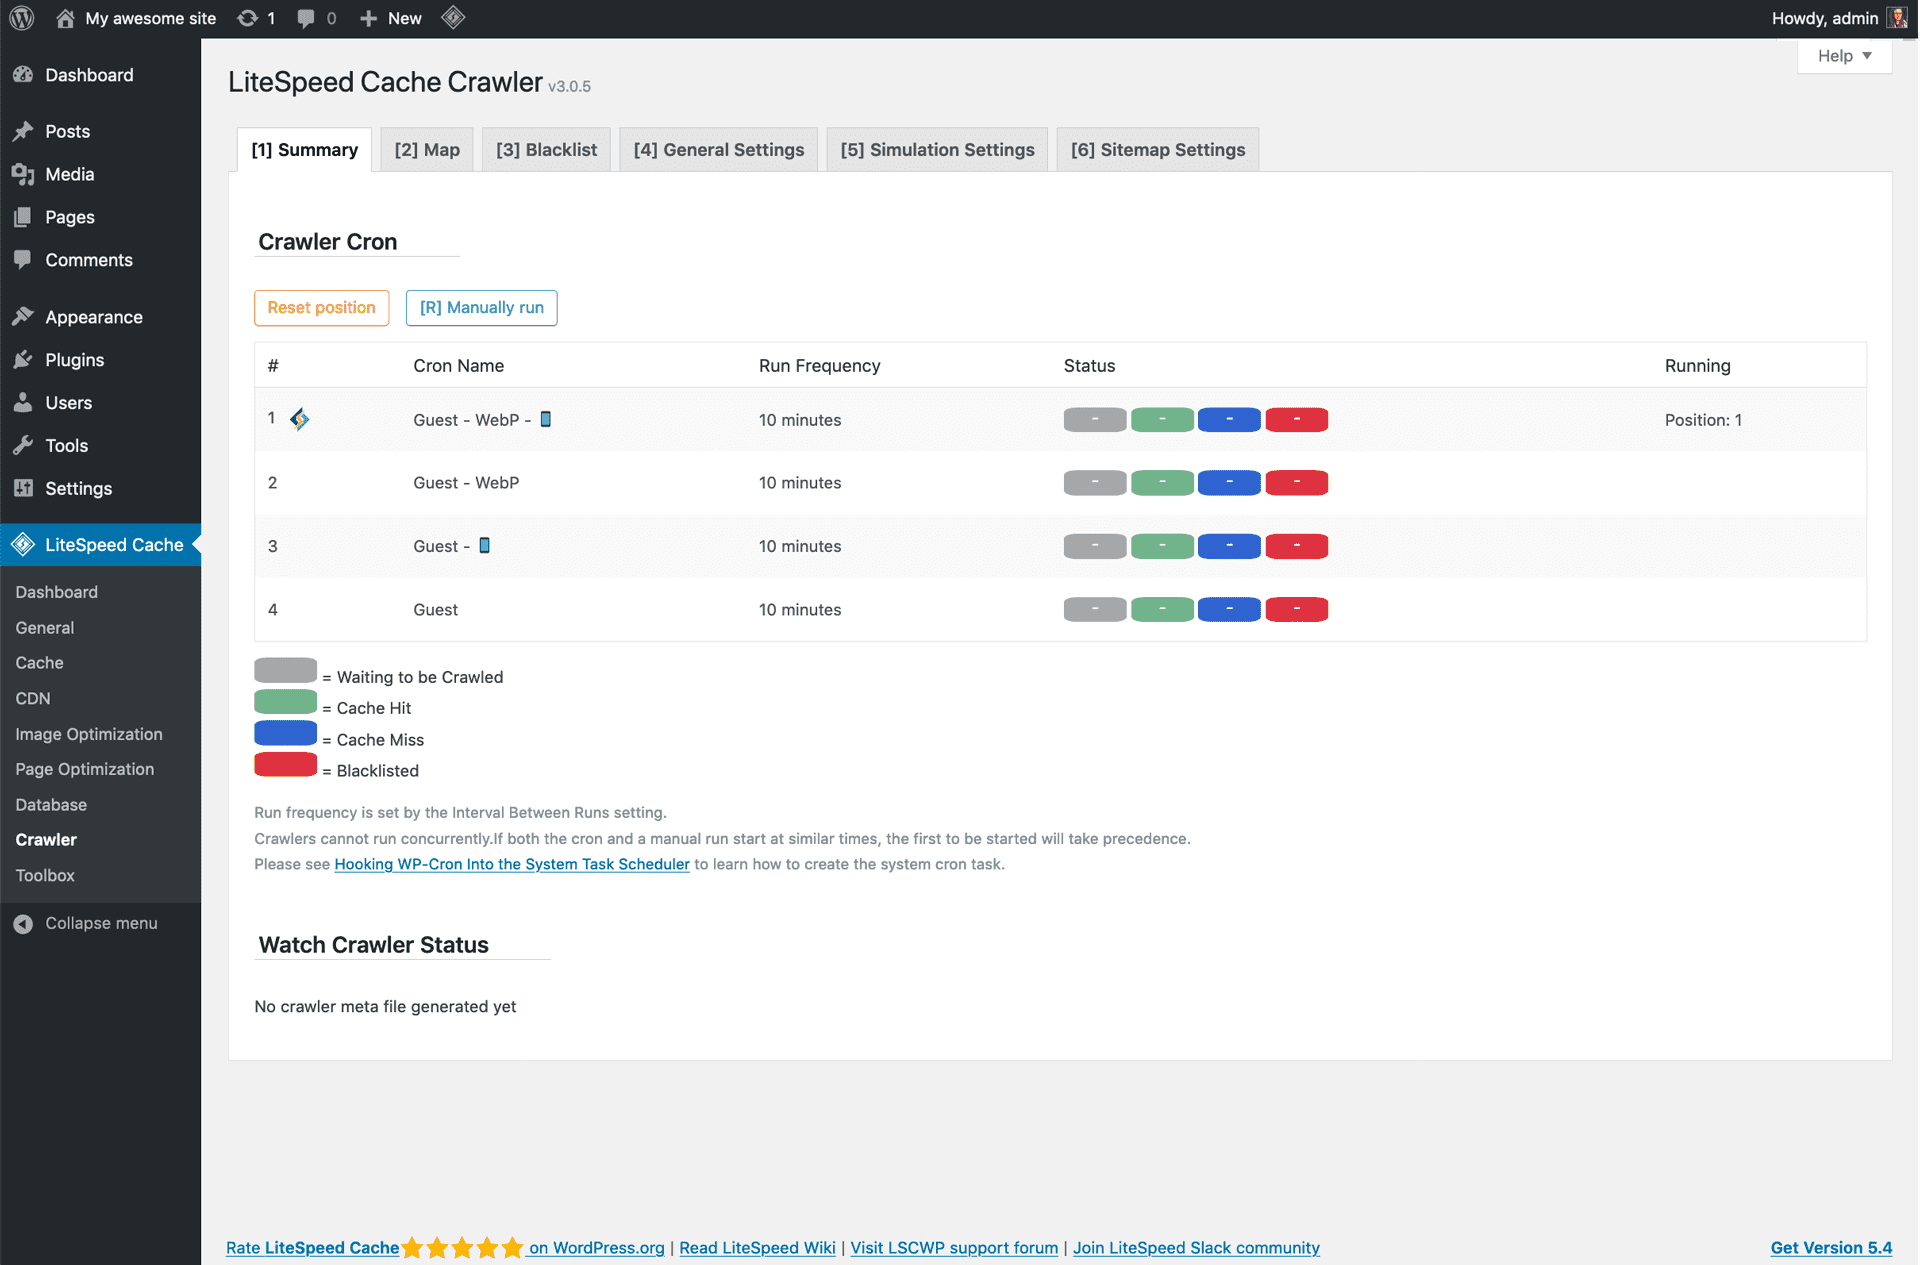 litespeed-cache screenshot 4